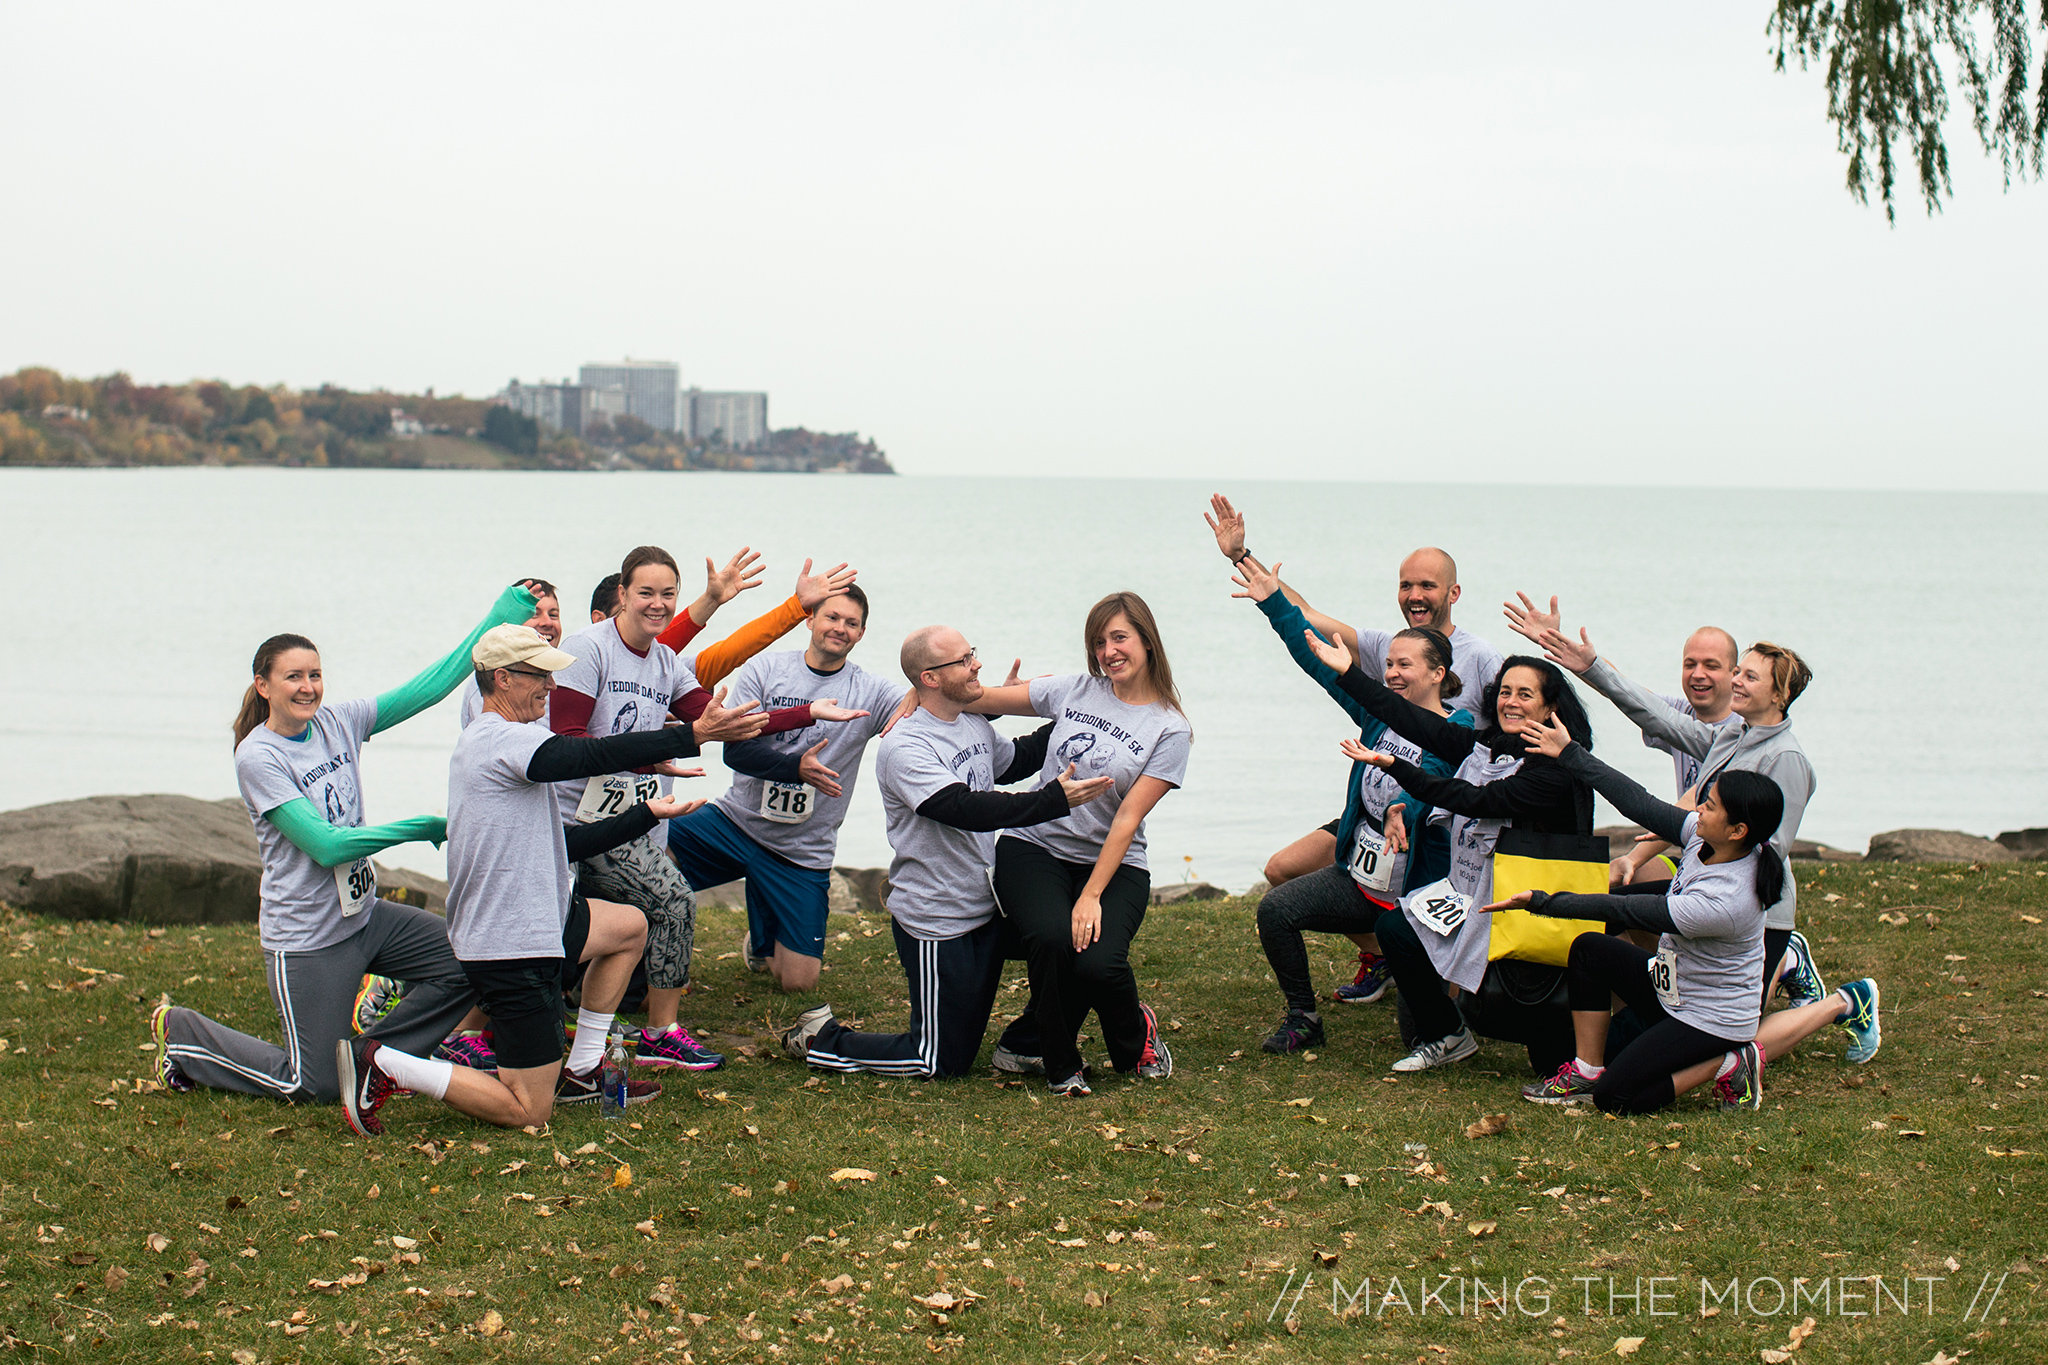 What a way to start the day!  The groom ran in the Cleveland Clinic Wellness Run on the wedding day.